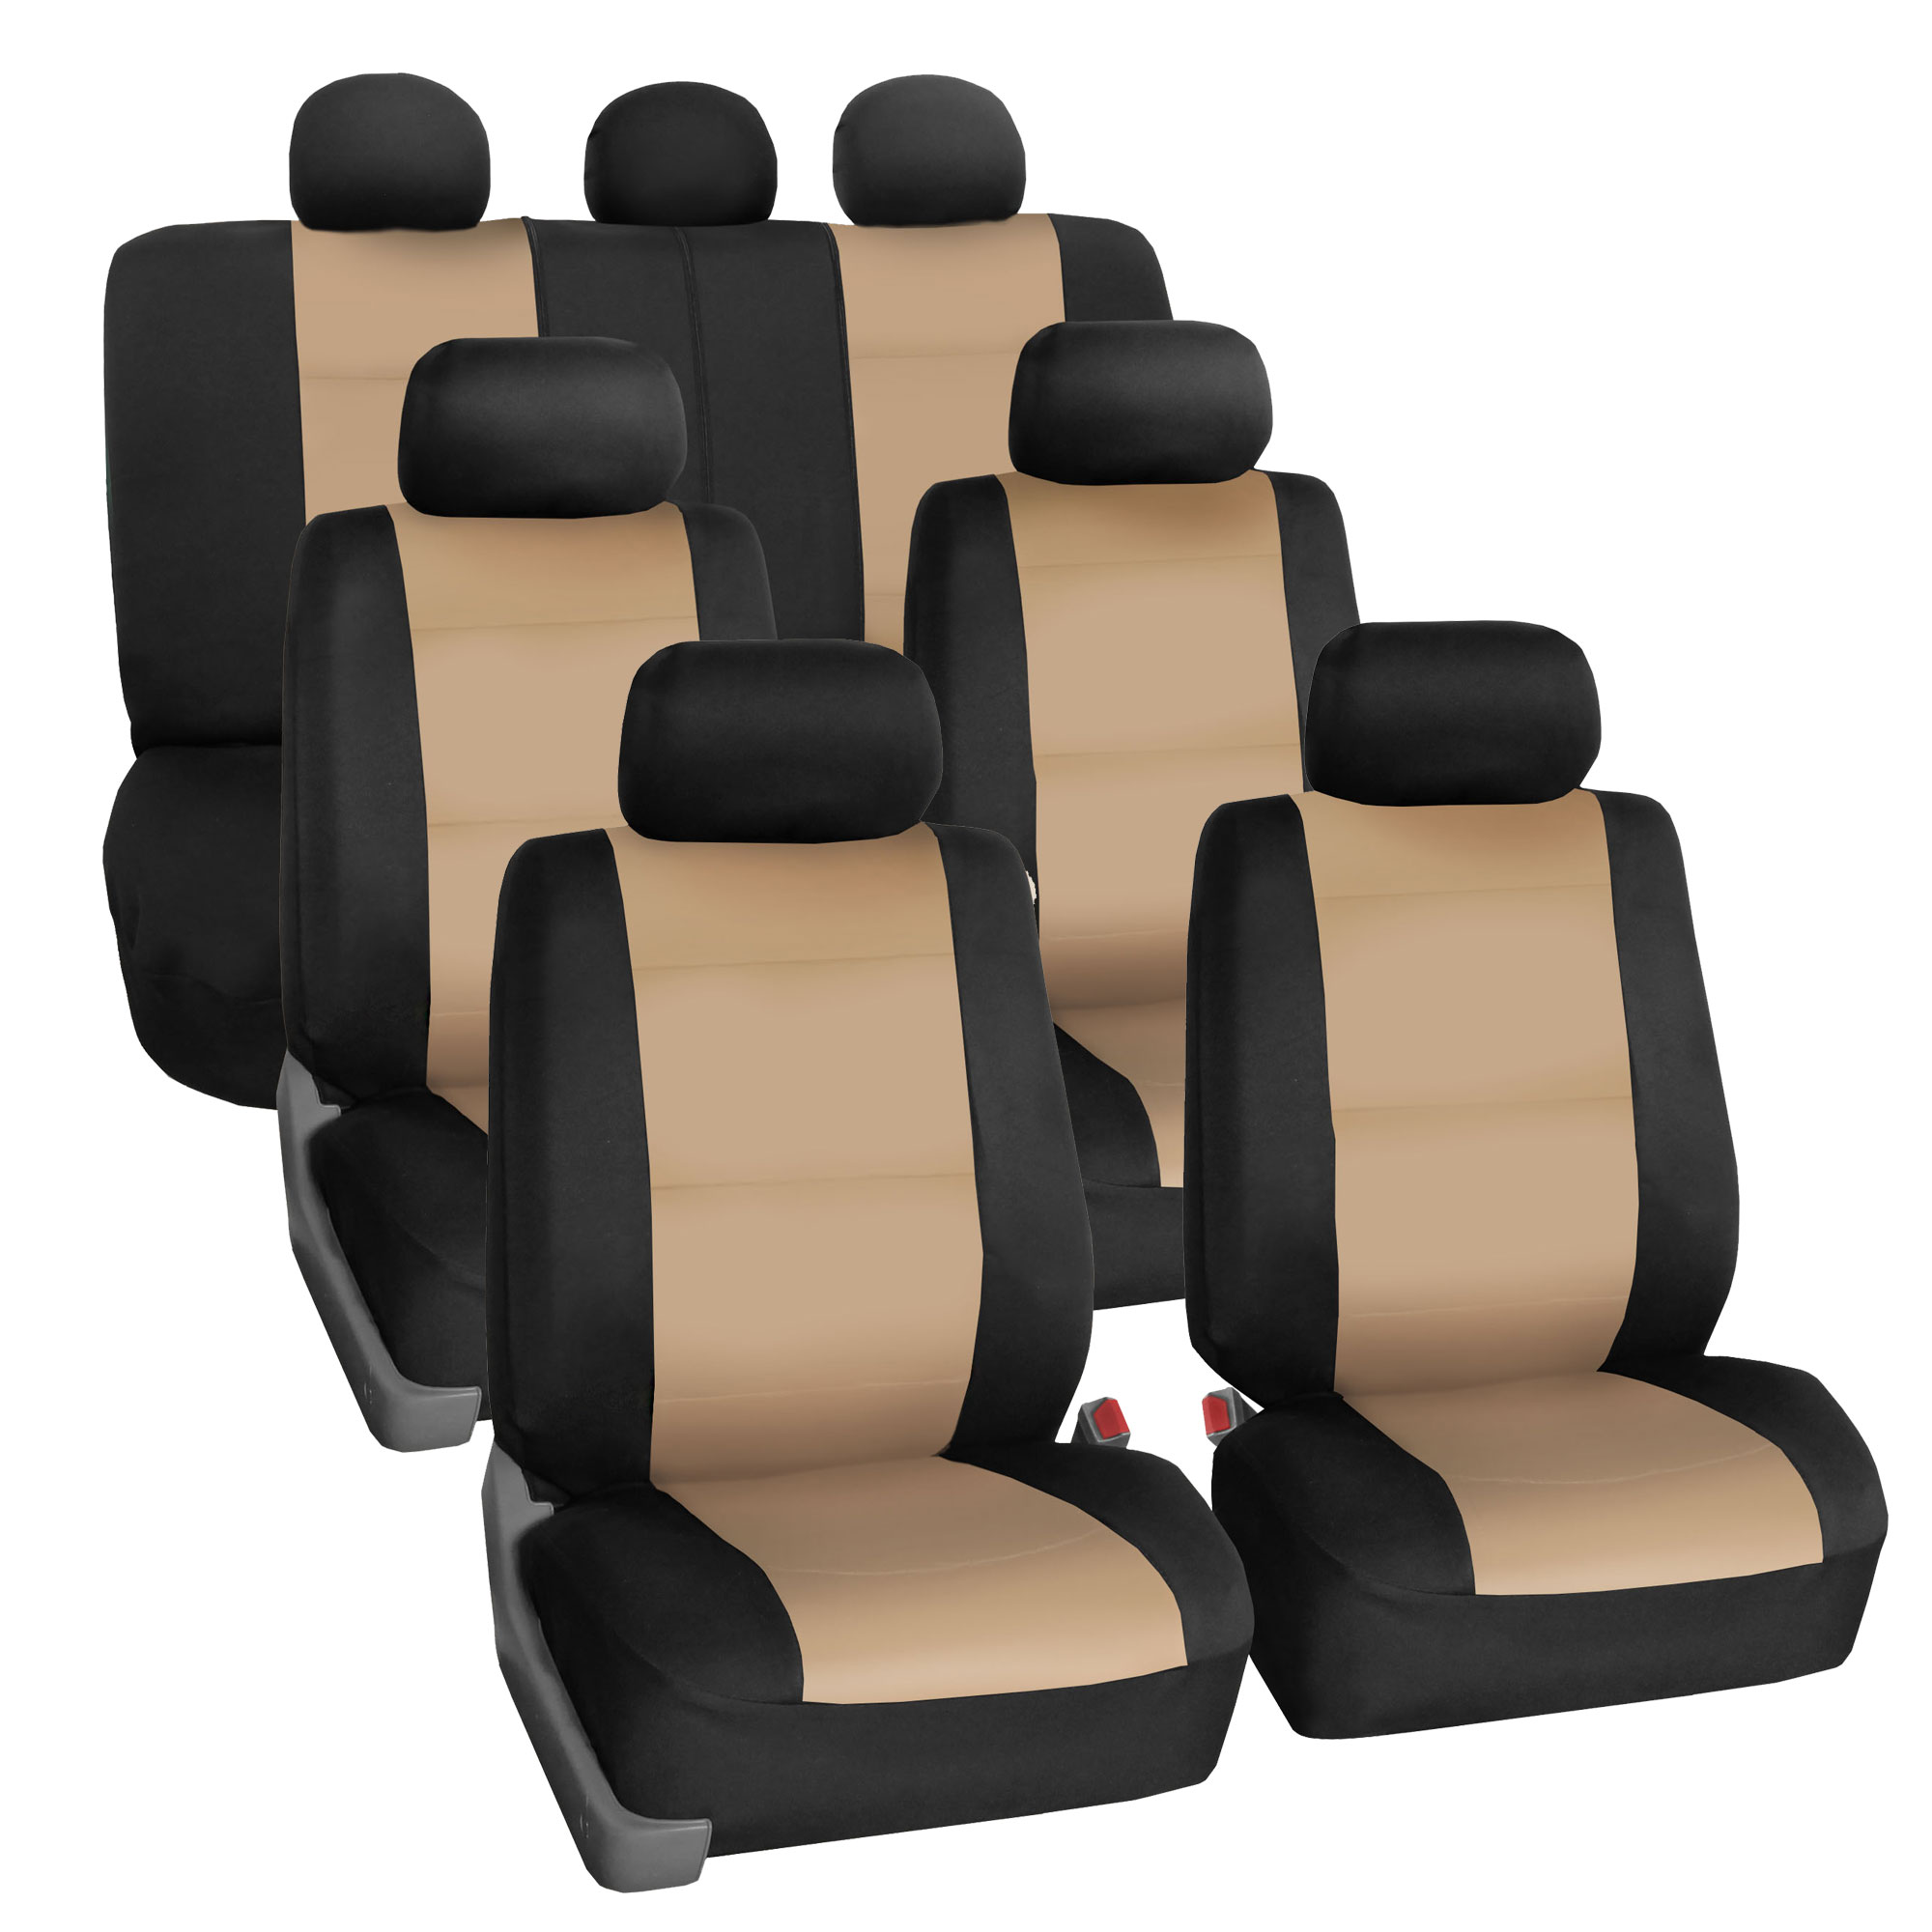 Neoprene 3 Row Car Seat Covers For SUV VAN TRUCK, Airbag Compatible Split Bench 7 Seaters, Beige Black